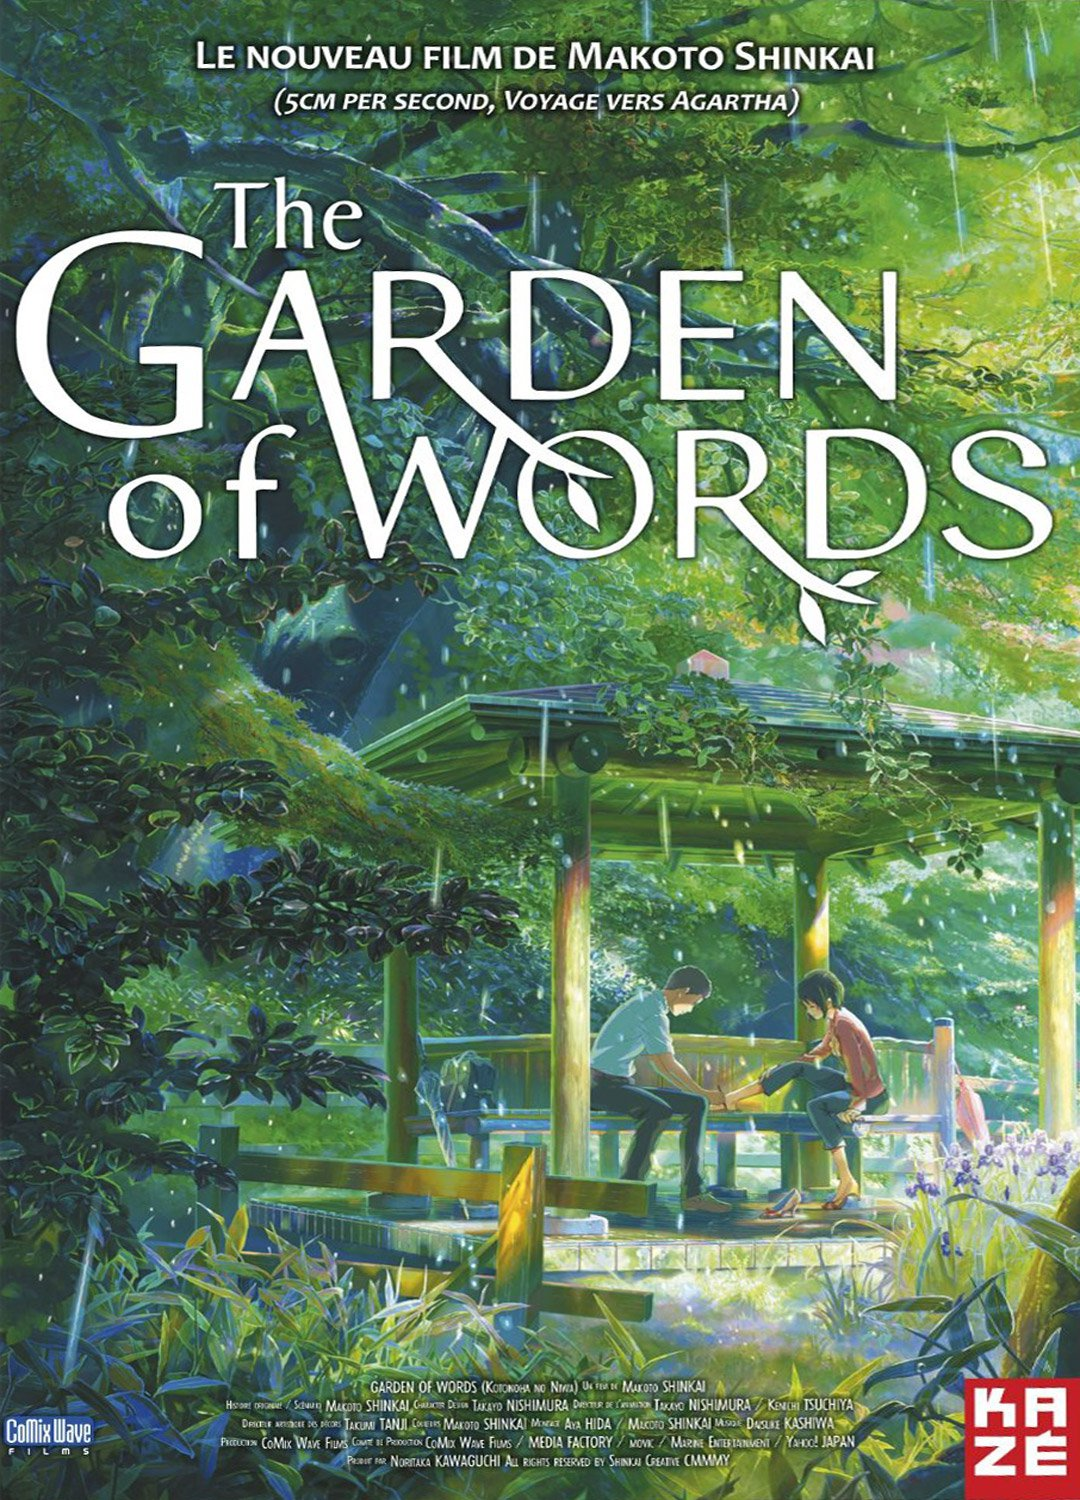 Les animés movies du gamopat - Page 3 Affiche-The-Garden-of-Words